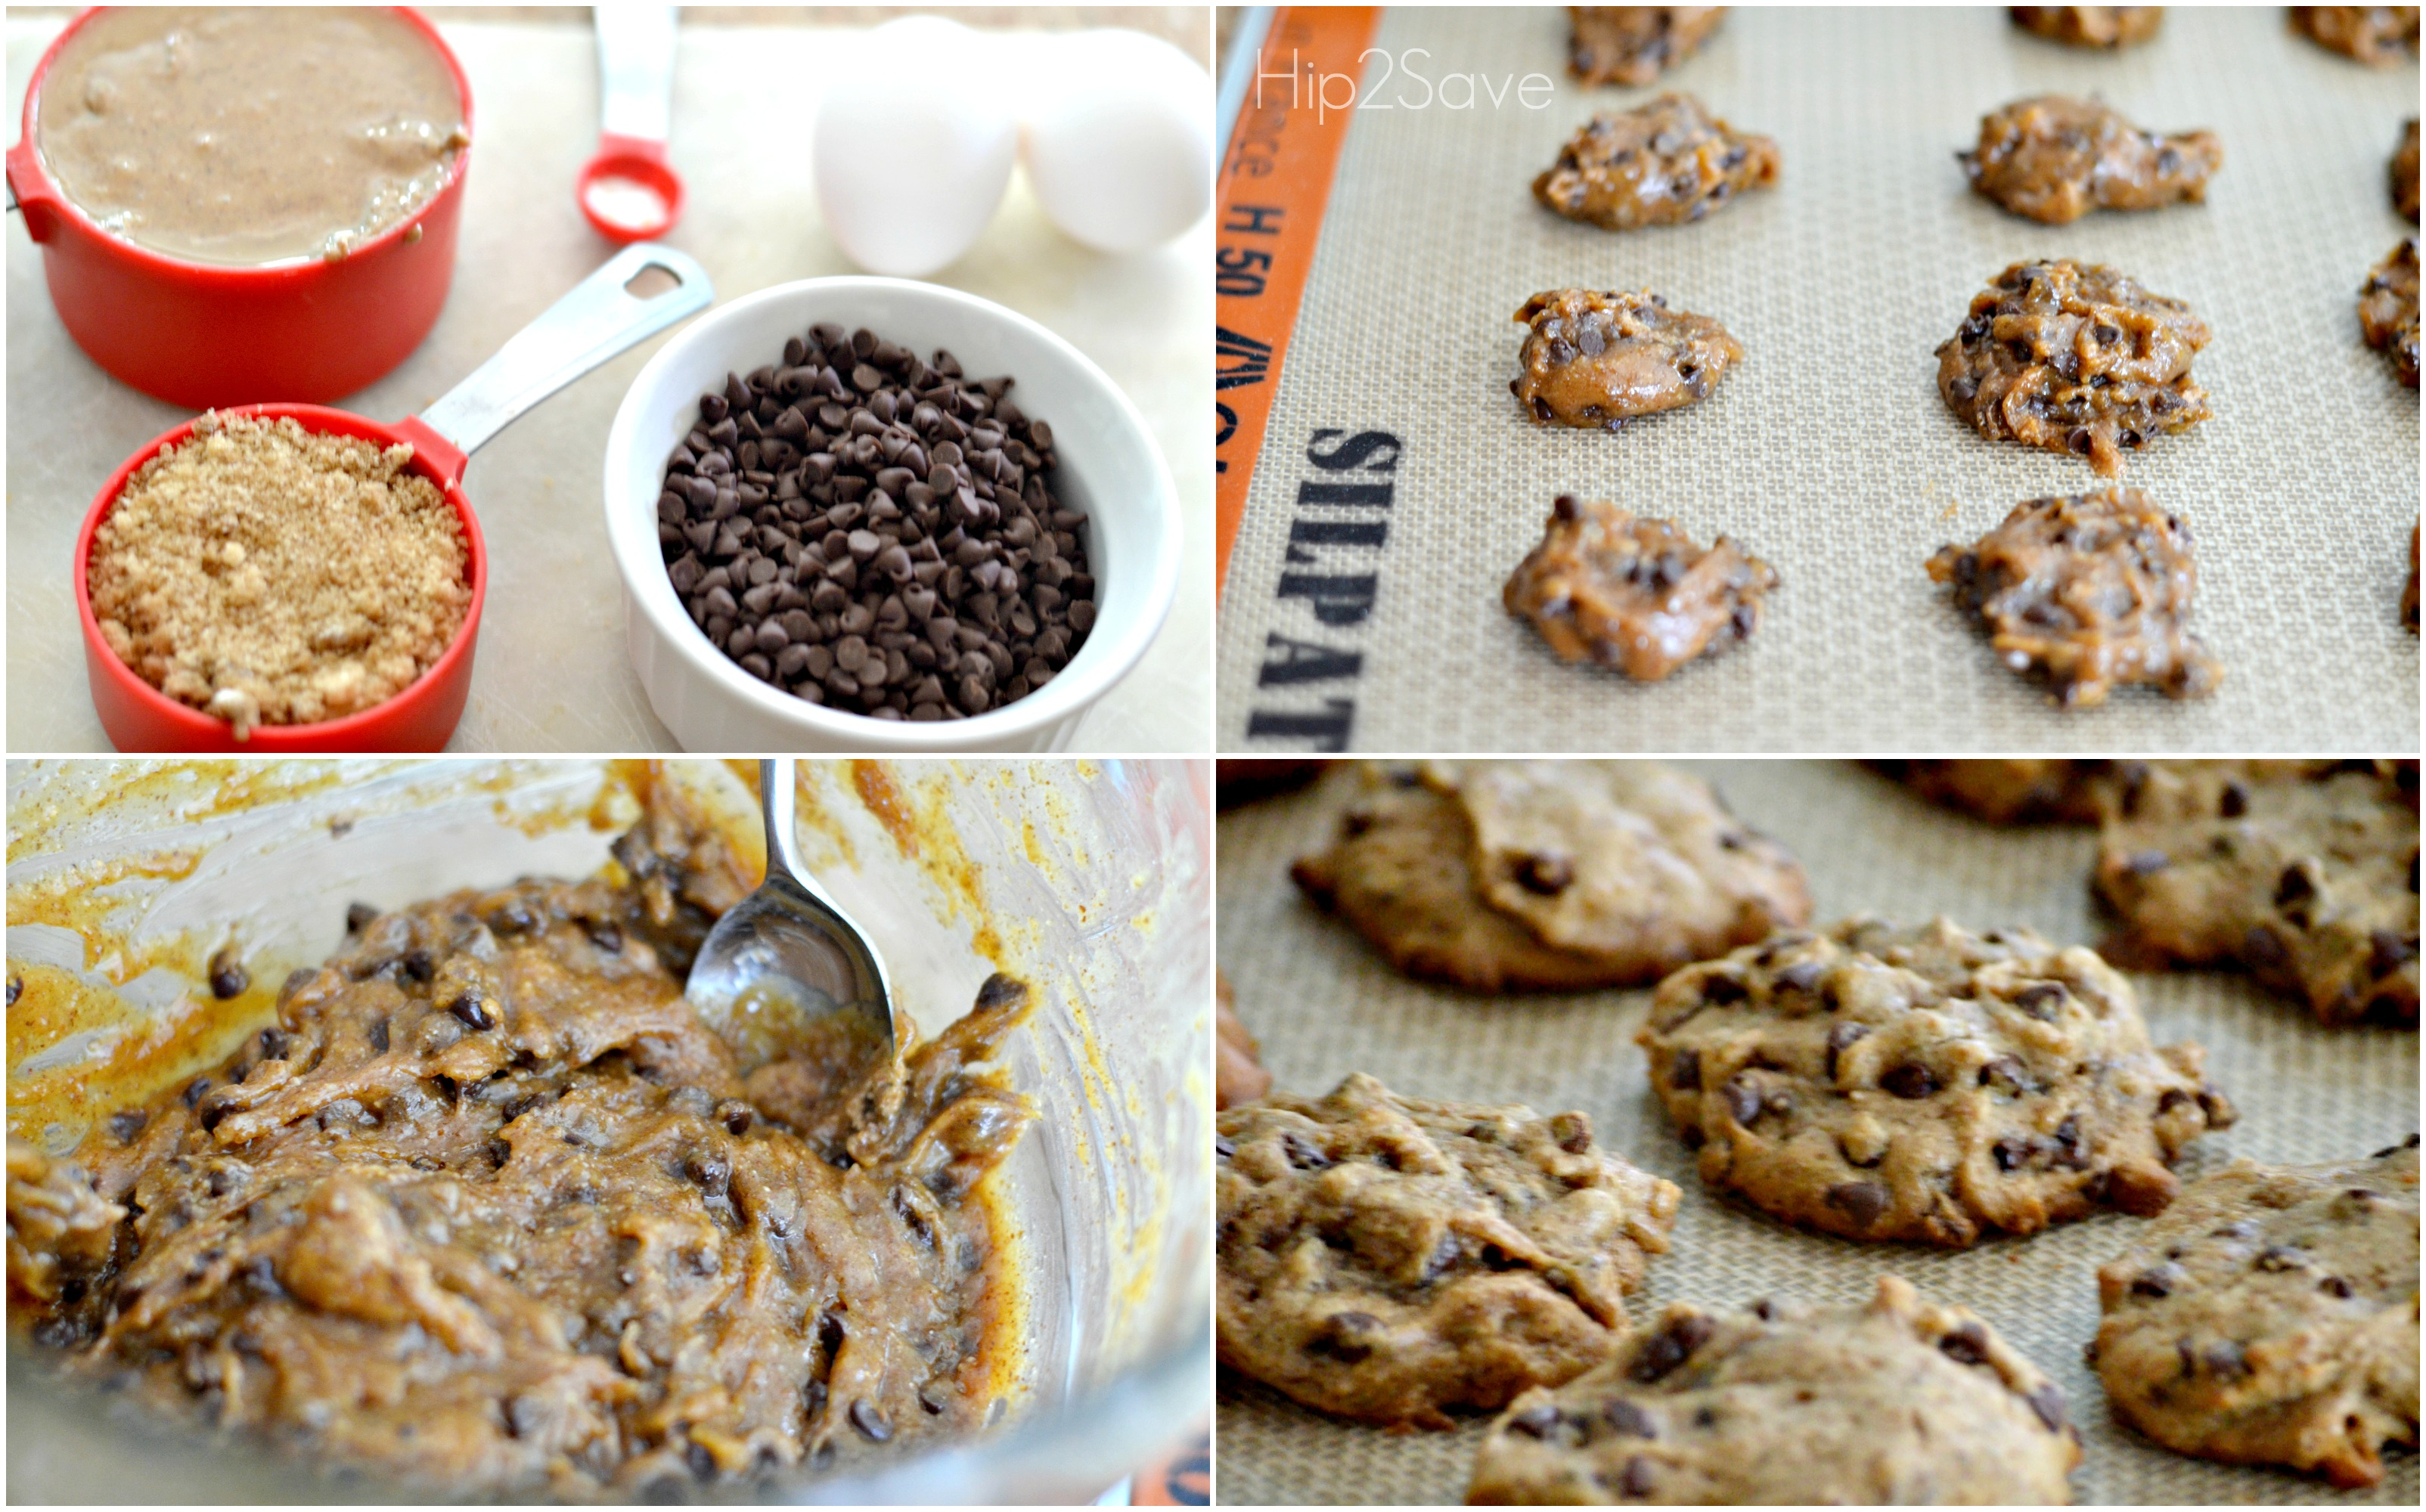 Almond Butter Chocolate Chip Cookies Hip2Save